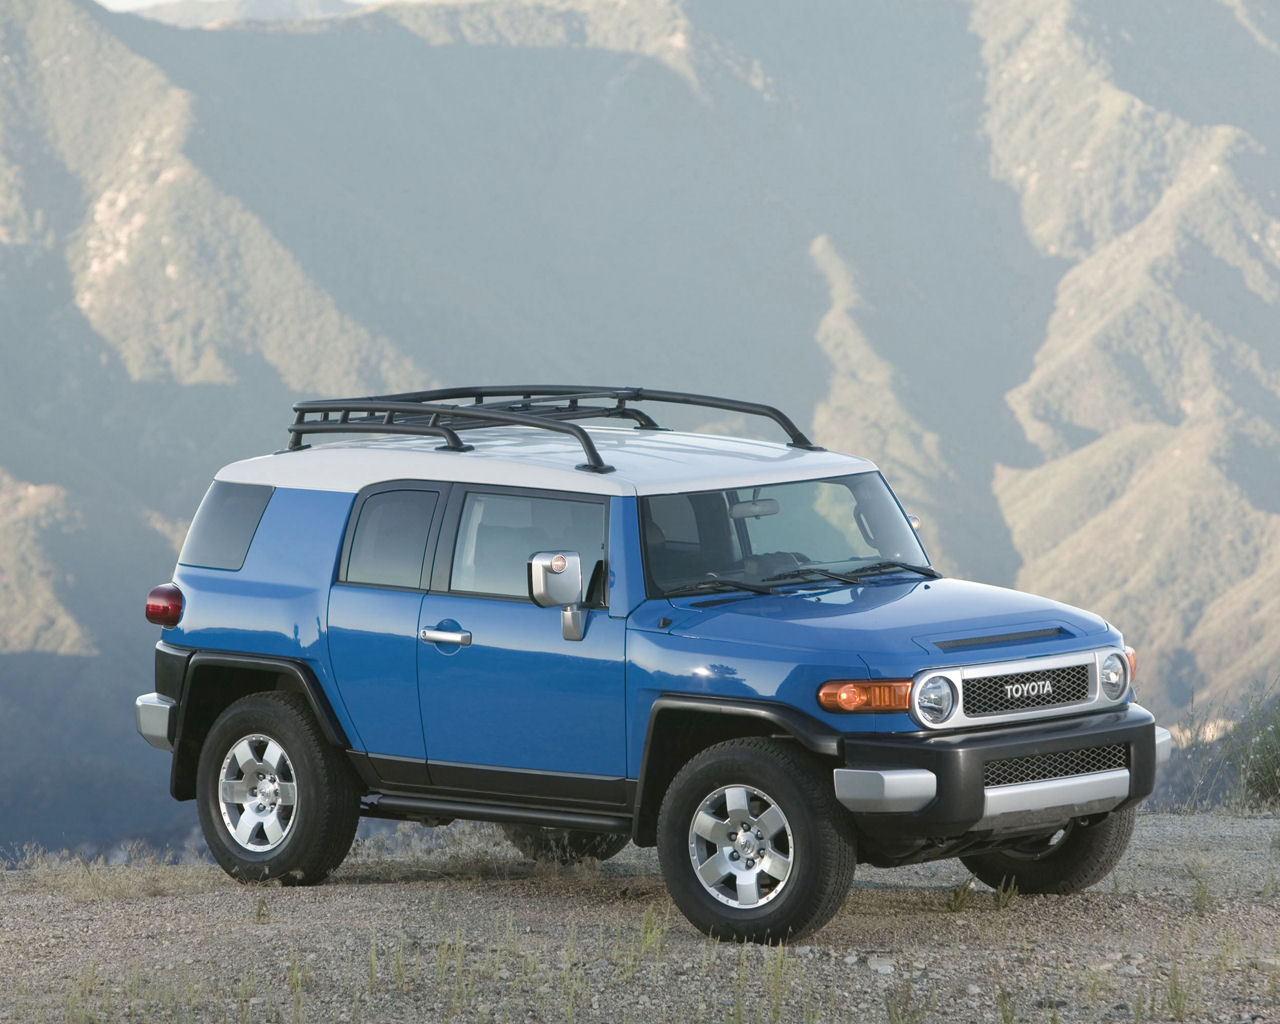 Toyota FJ Cruiser V6 AWD  Free 1280x1024 Wallpaper  Desktop